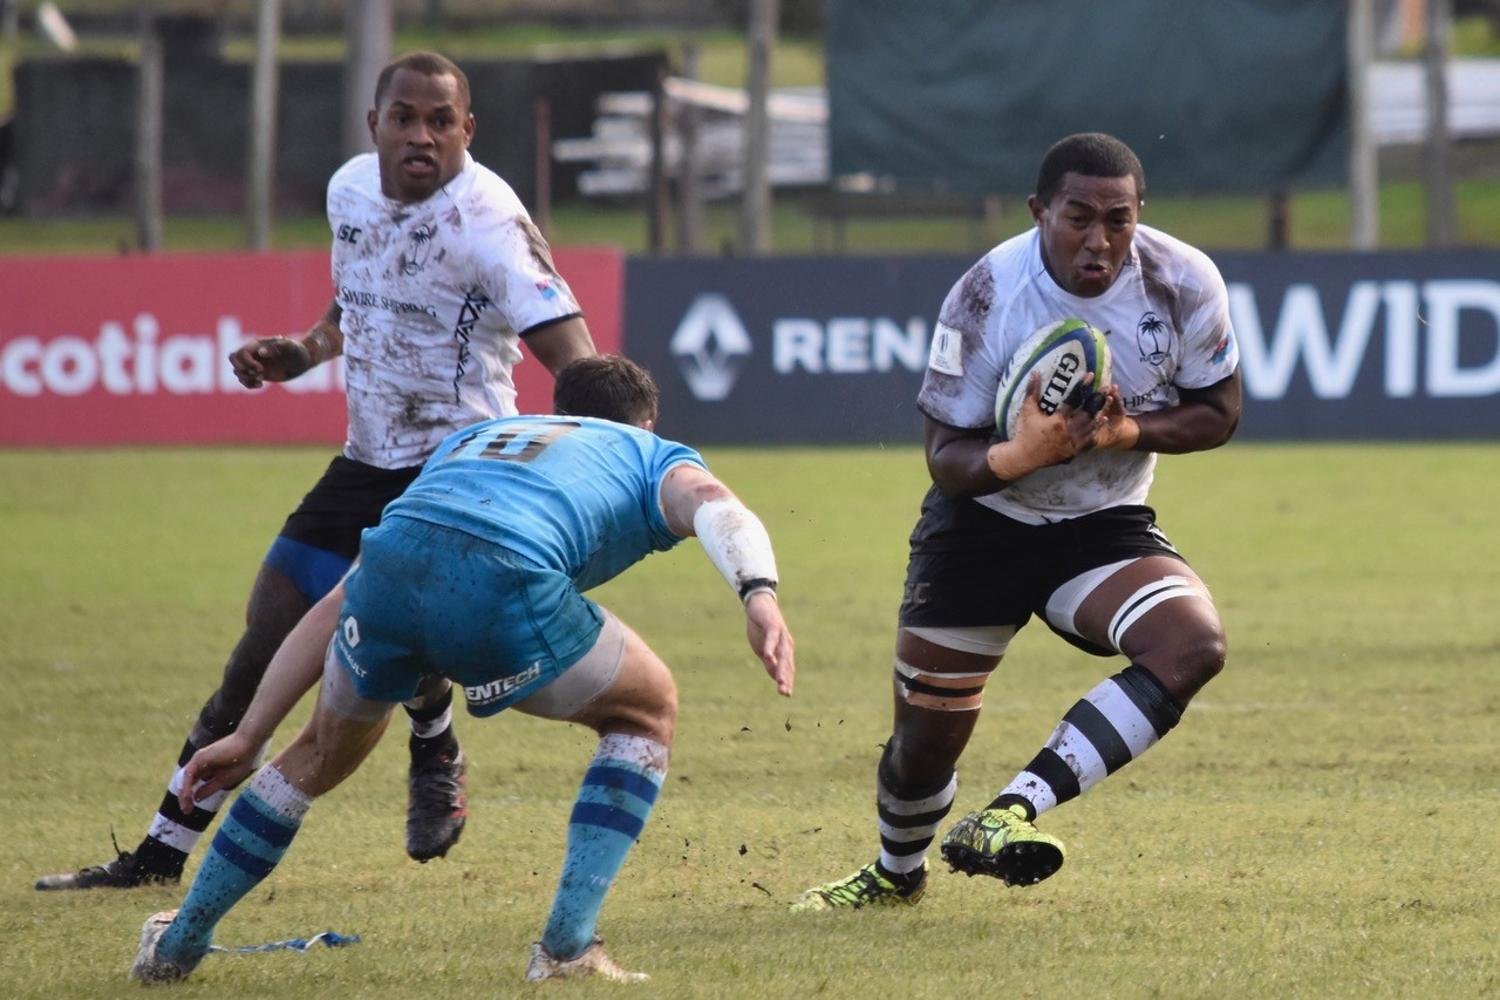 World Rugby Nations Cup 2018: Uruguay v Fiji Warriors